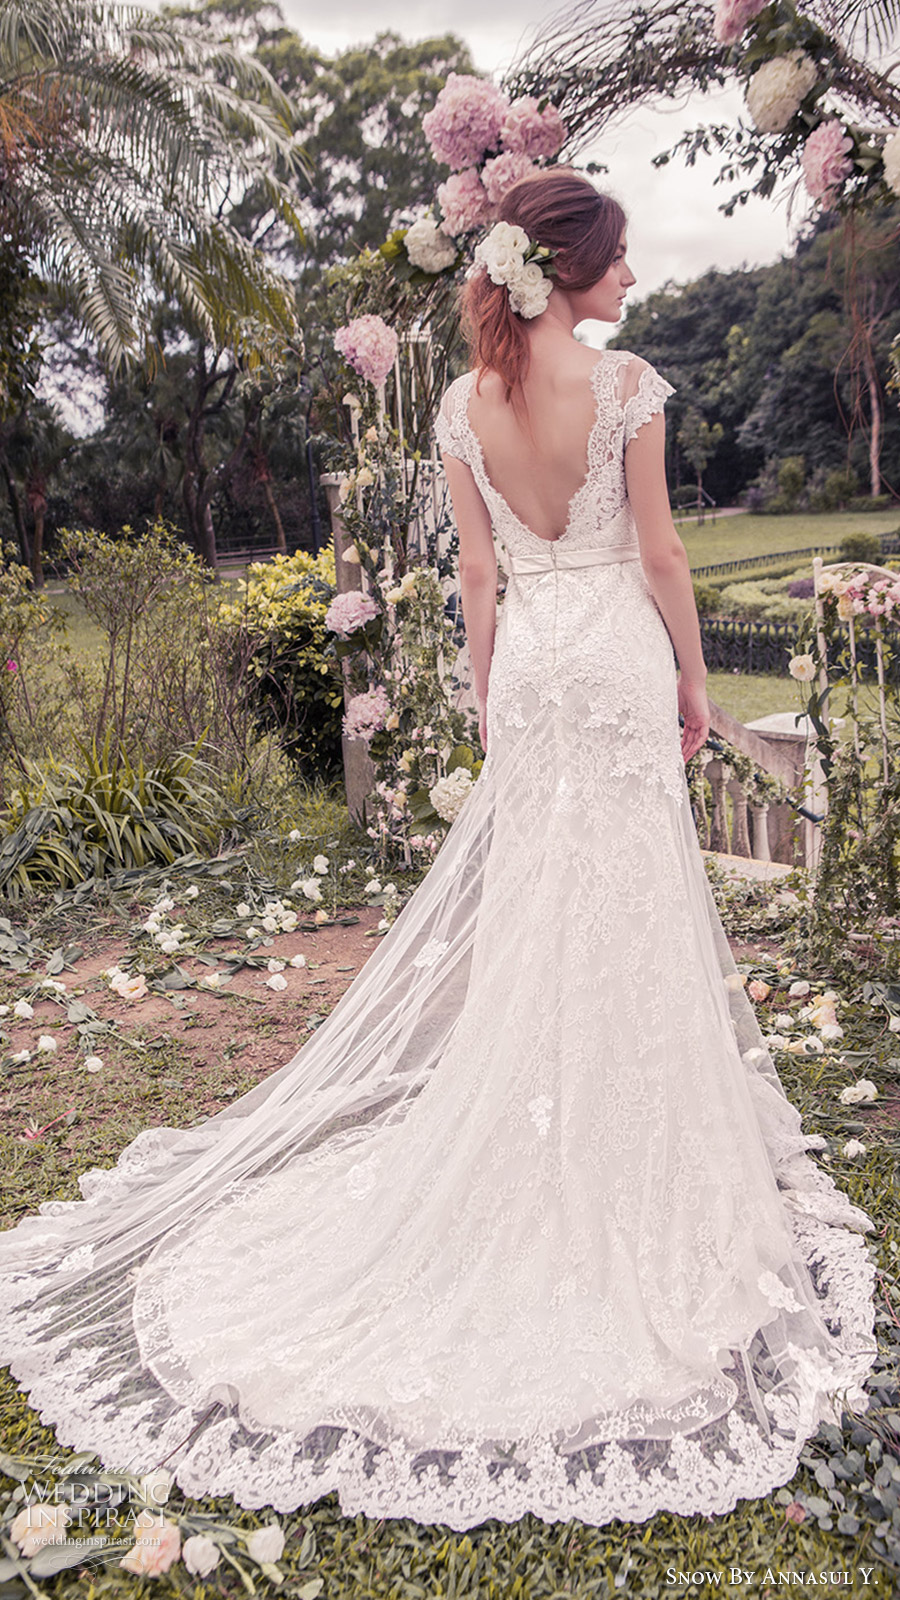 snow annasul y 2017 bridal (sa3265b) cap sleeves illusion bateau neck sweetheart trumpet lace wedding dress bv sheer train